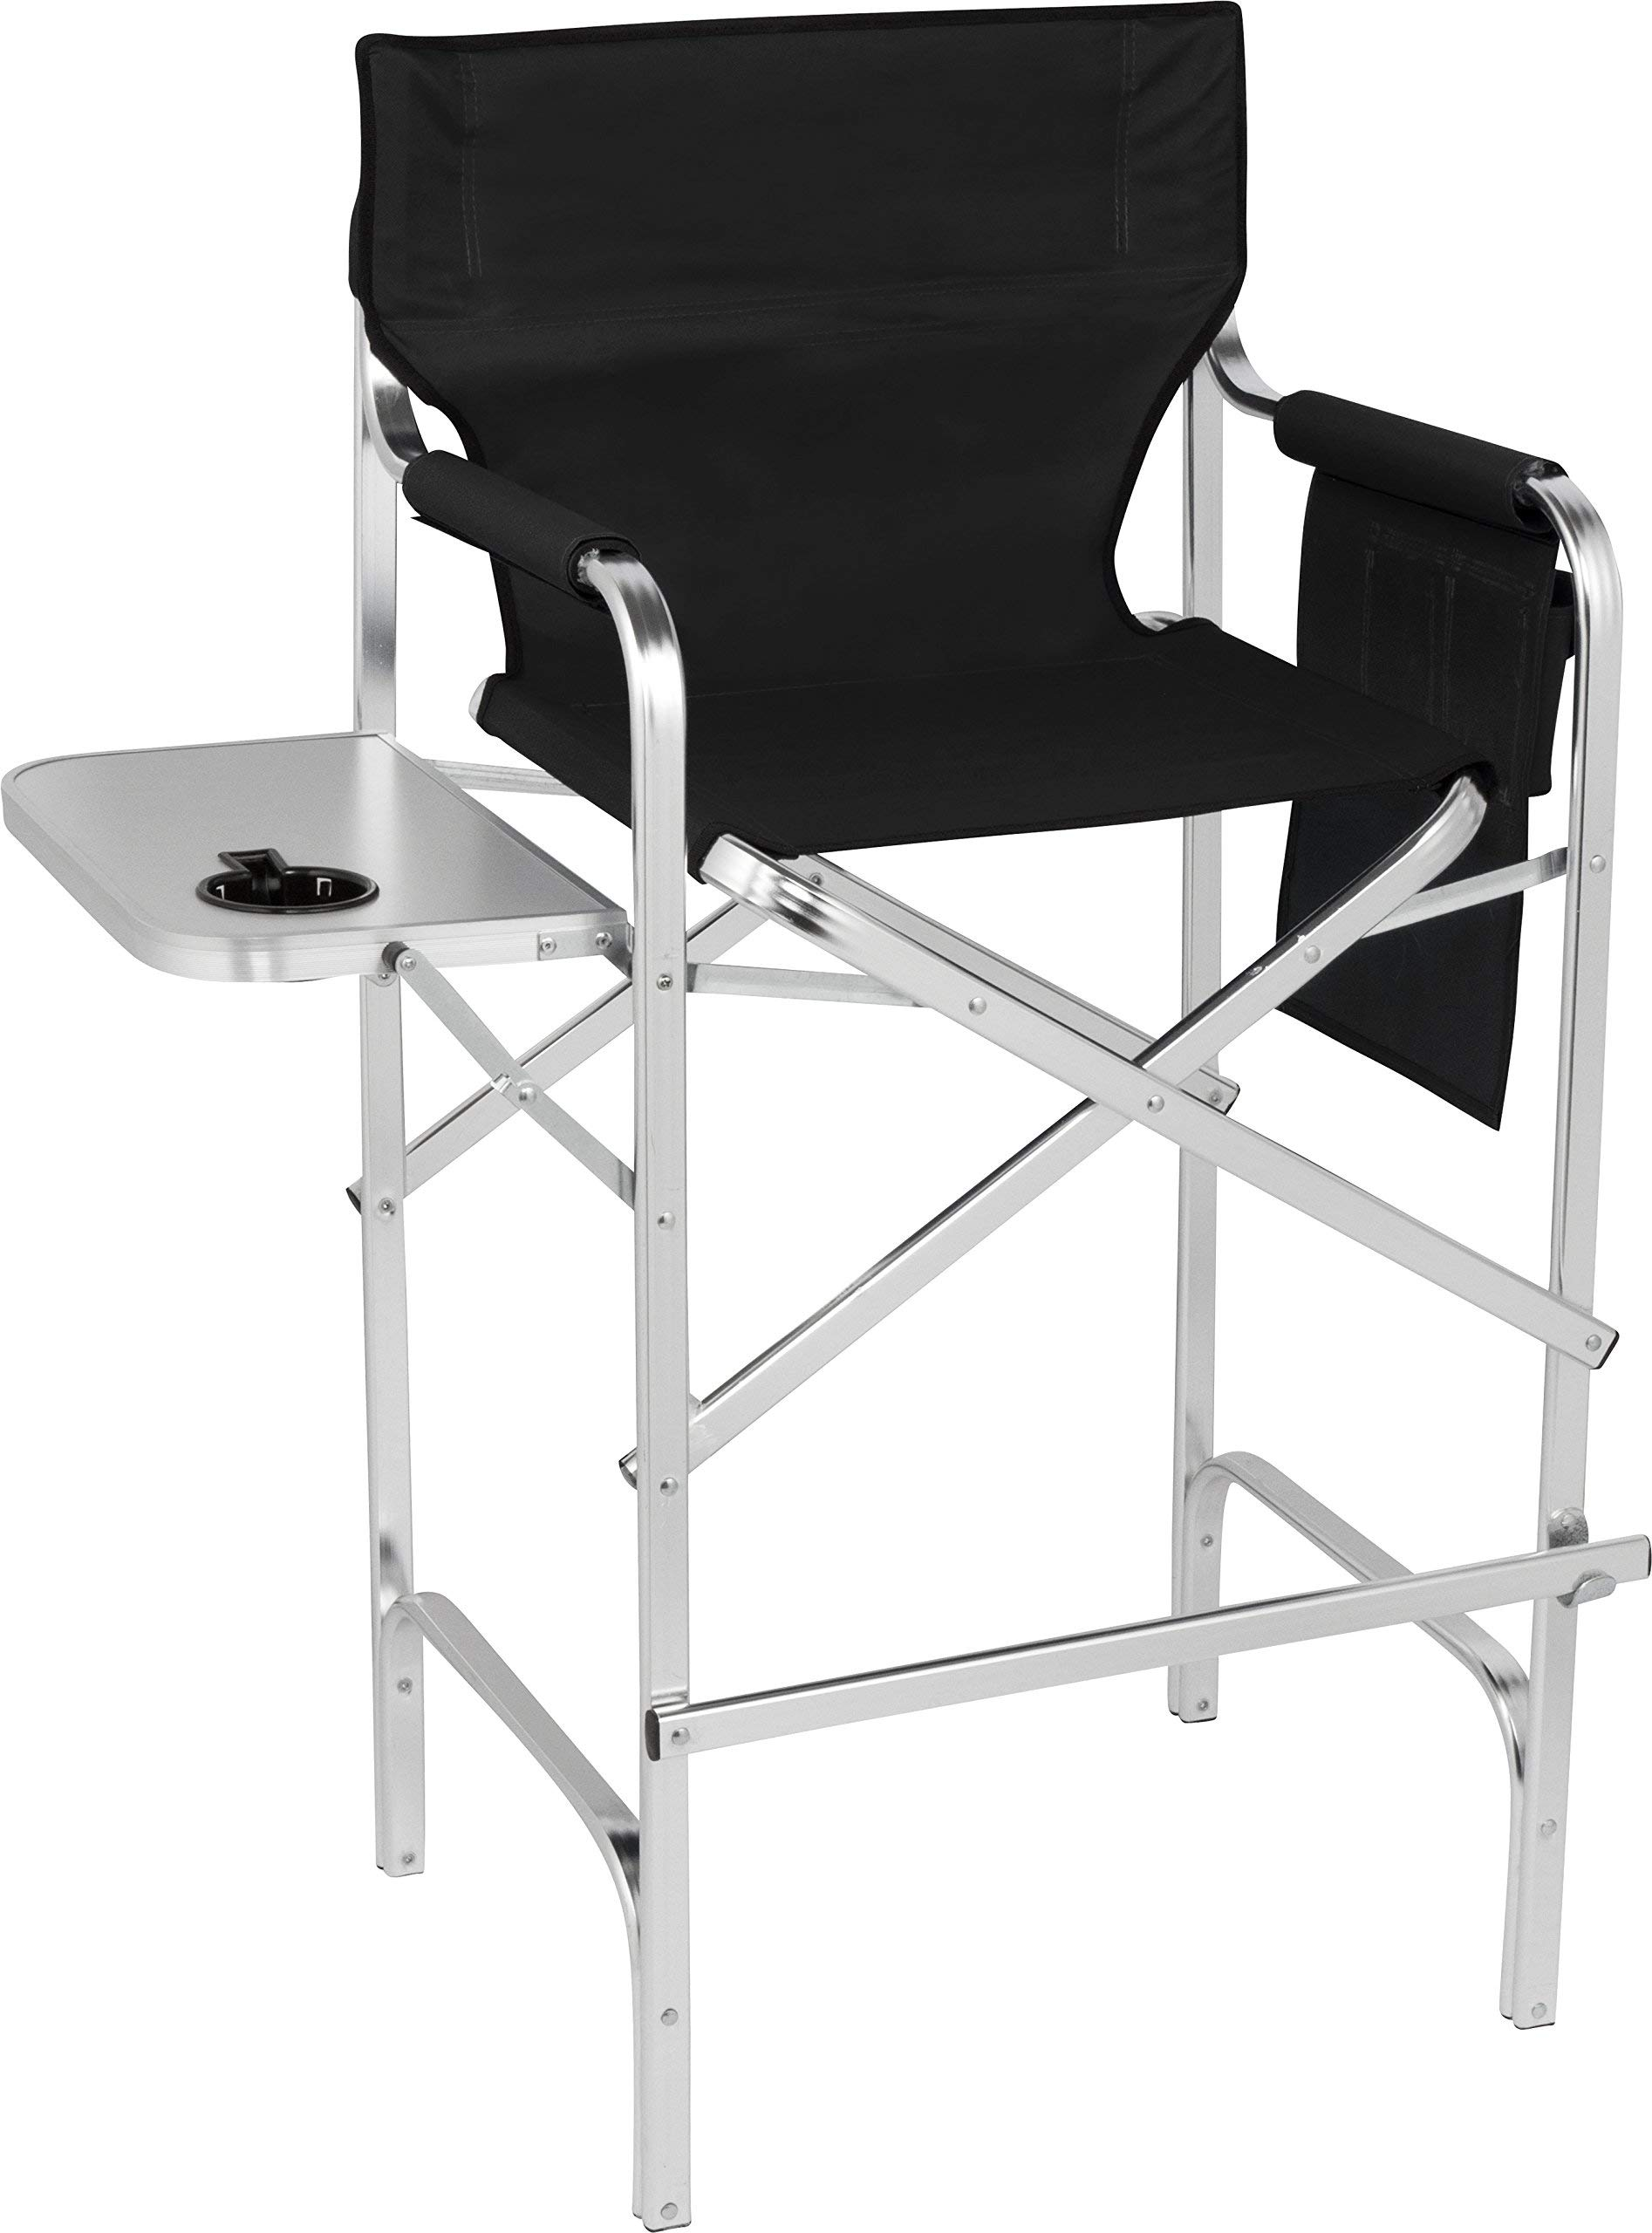 Trademark Innovations 45'' Aluminum Frame Tall Metal Director's Chair with Side Table (Black) (Renewed) by Trademark Innovations